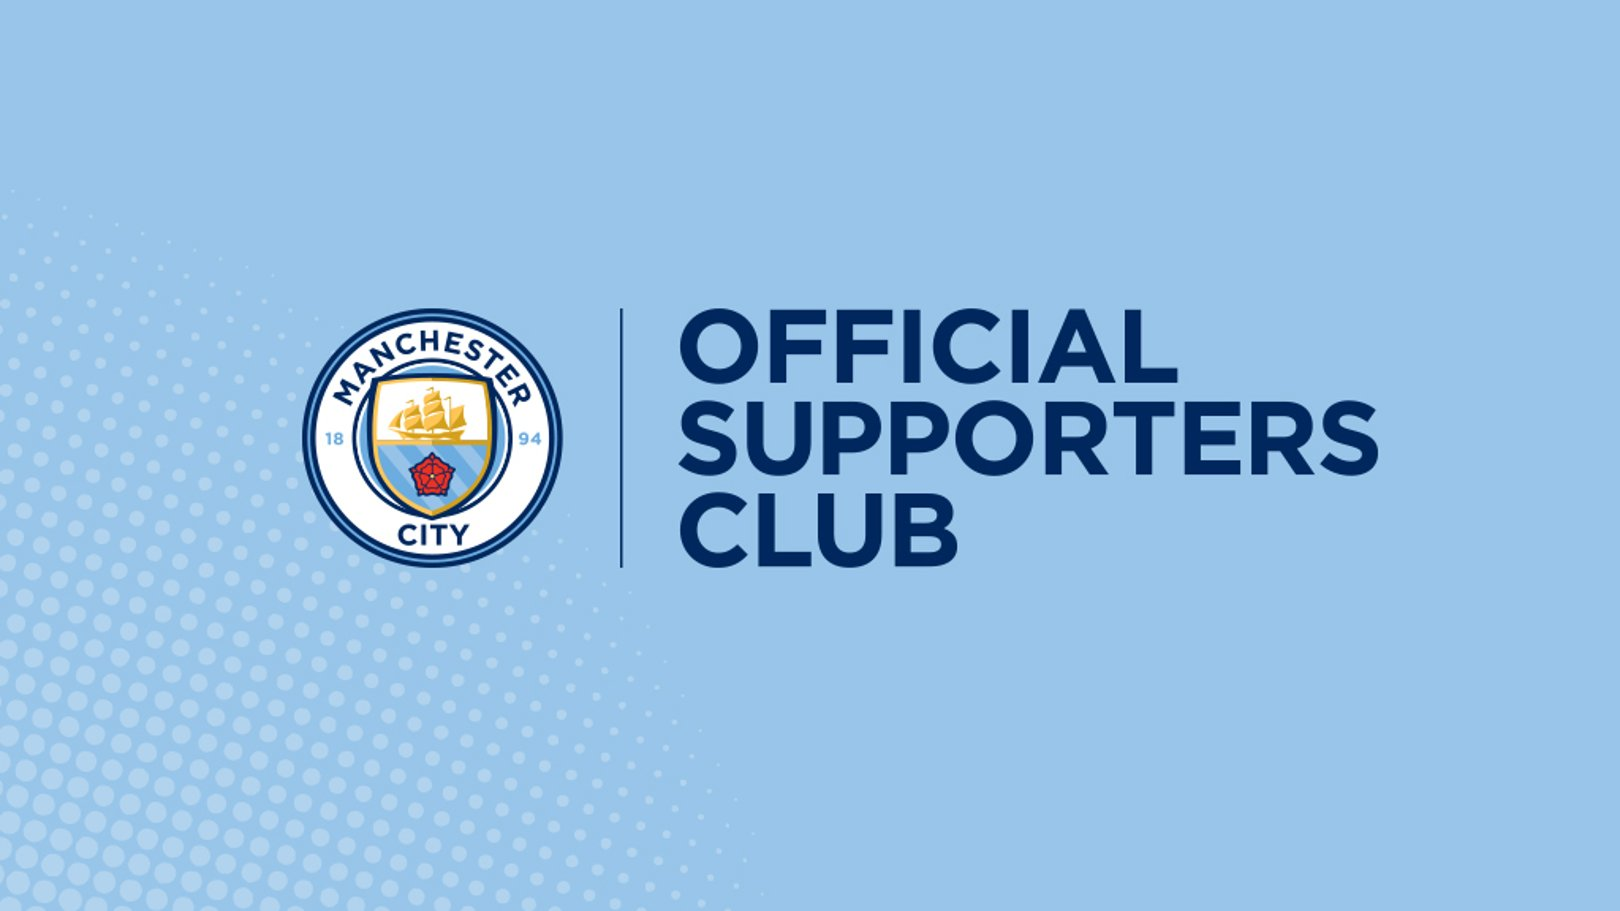 Four new branches join Official Supporters Club network